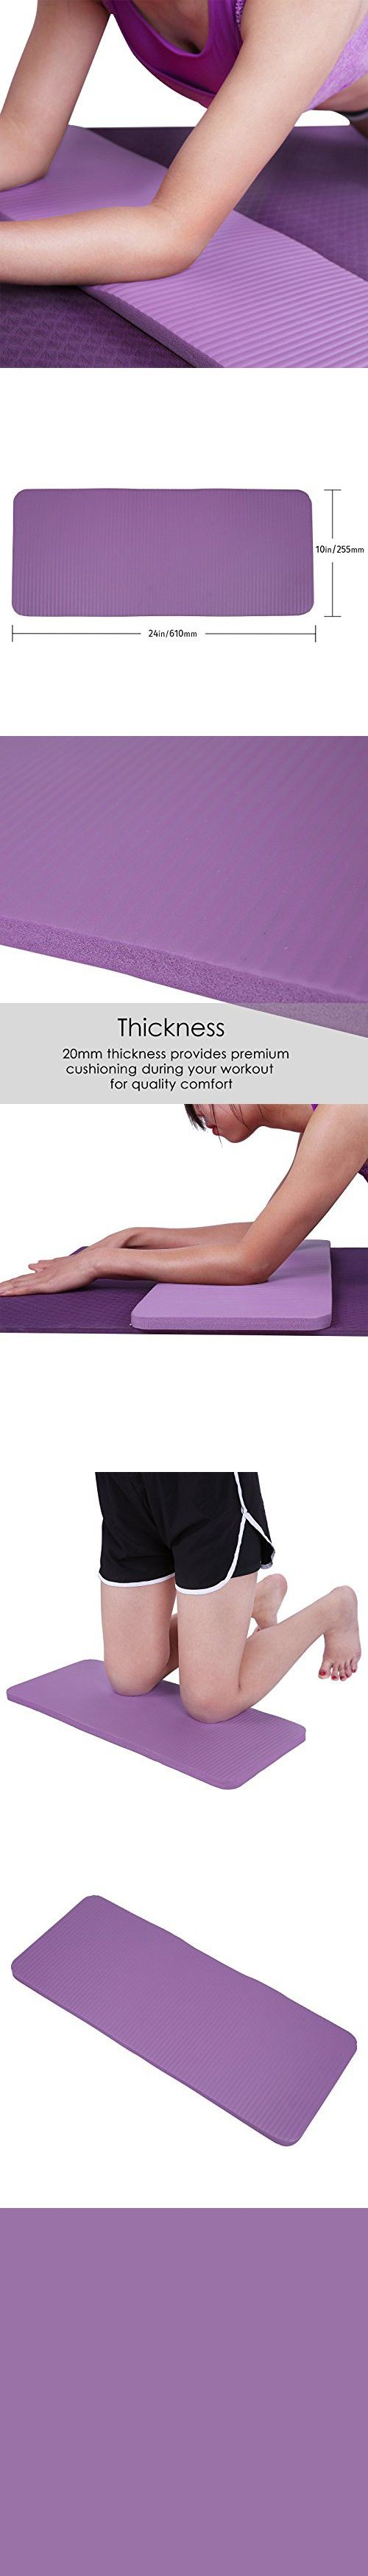 """HDE Yoga Knee Pad 20mm Thick Anti-Slip Workout Mat for Yoga Pilates Fitness and Exercise Pressure Point Relief Pain Free 24""""x10"""" Cushion (Purple)"""